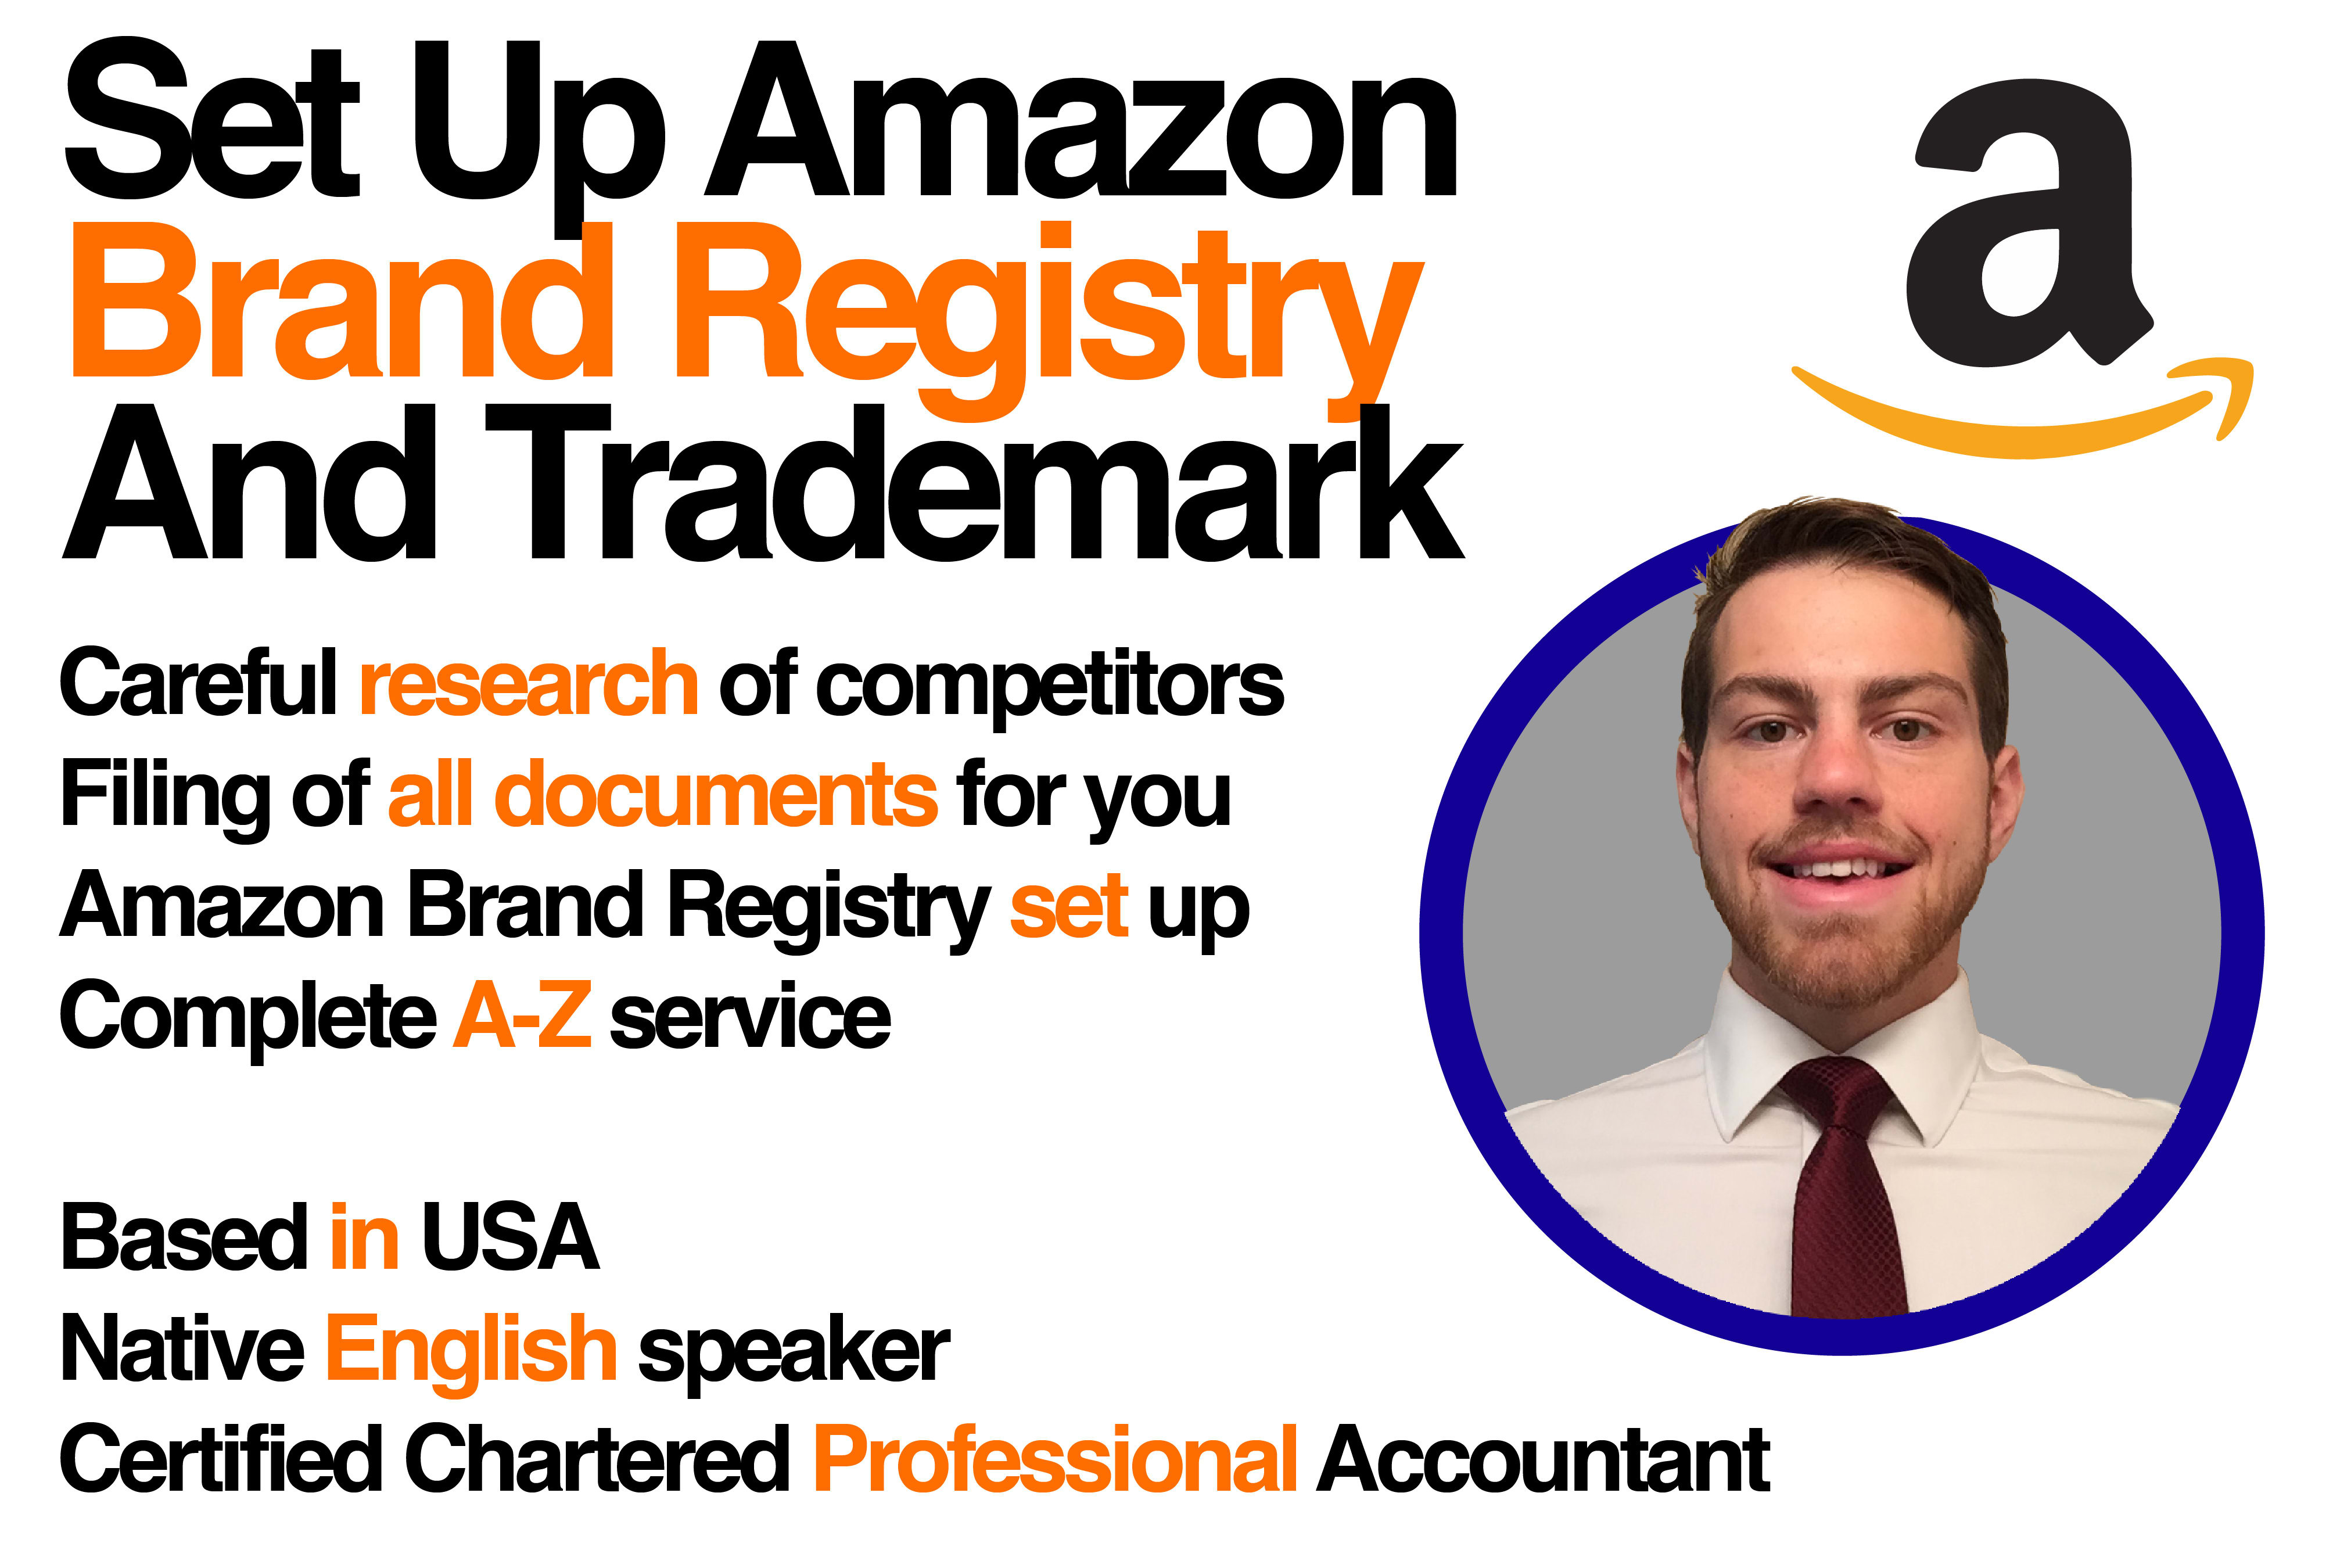 how long does amazon brand registry take